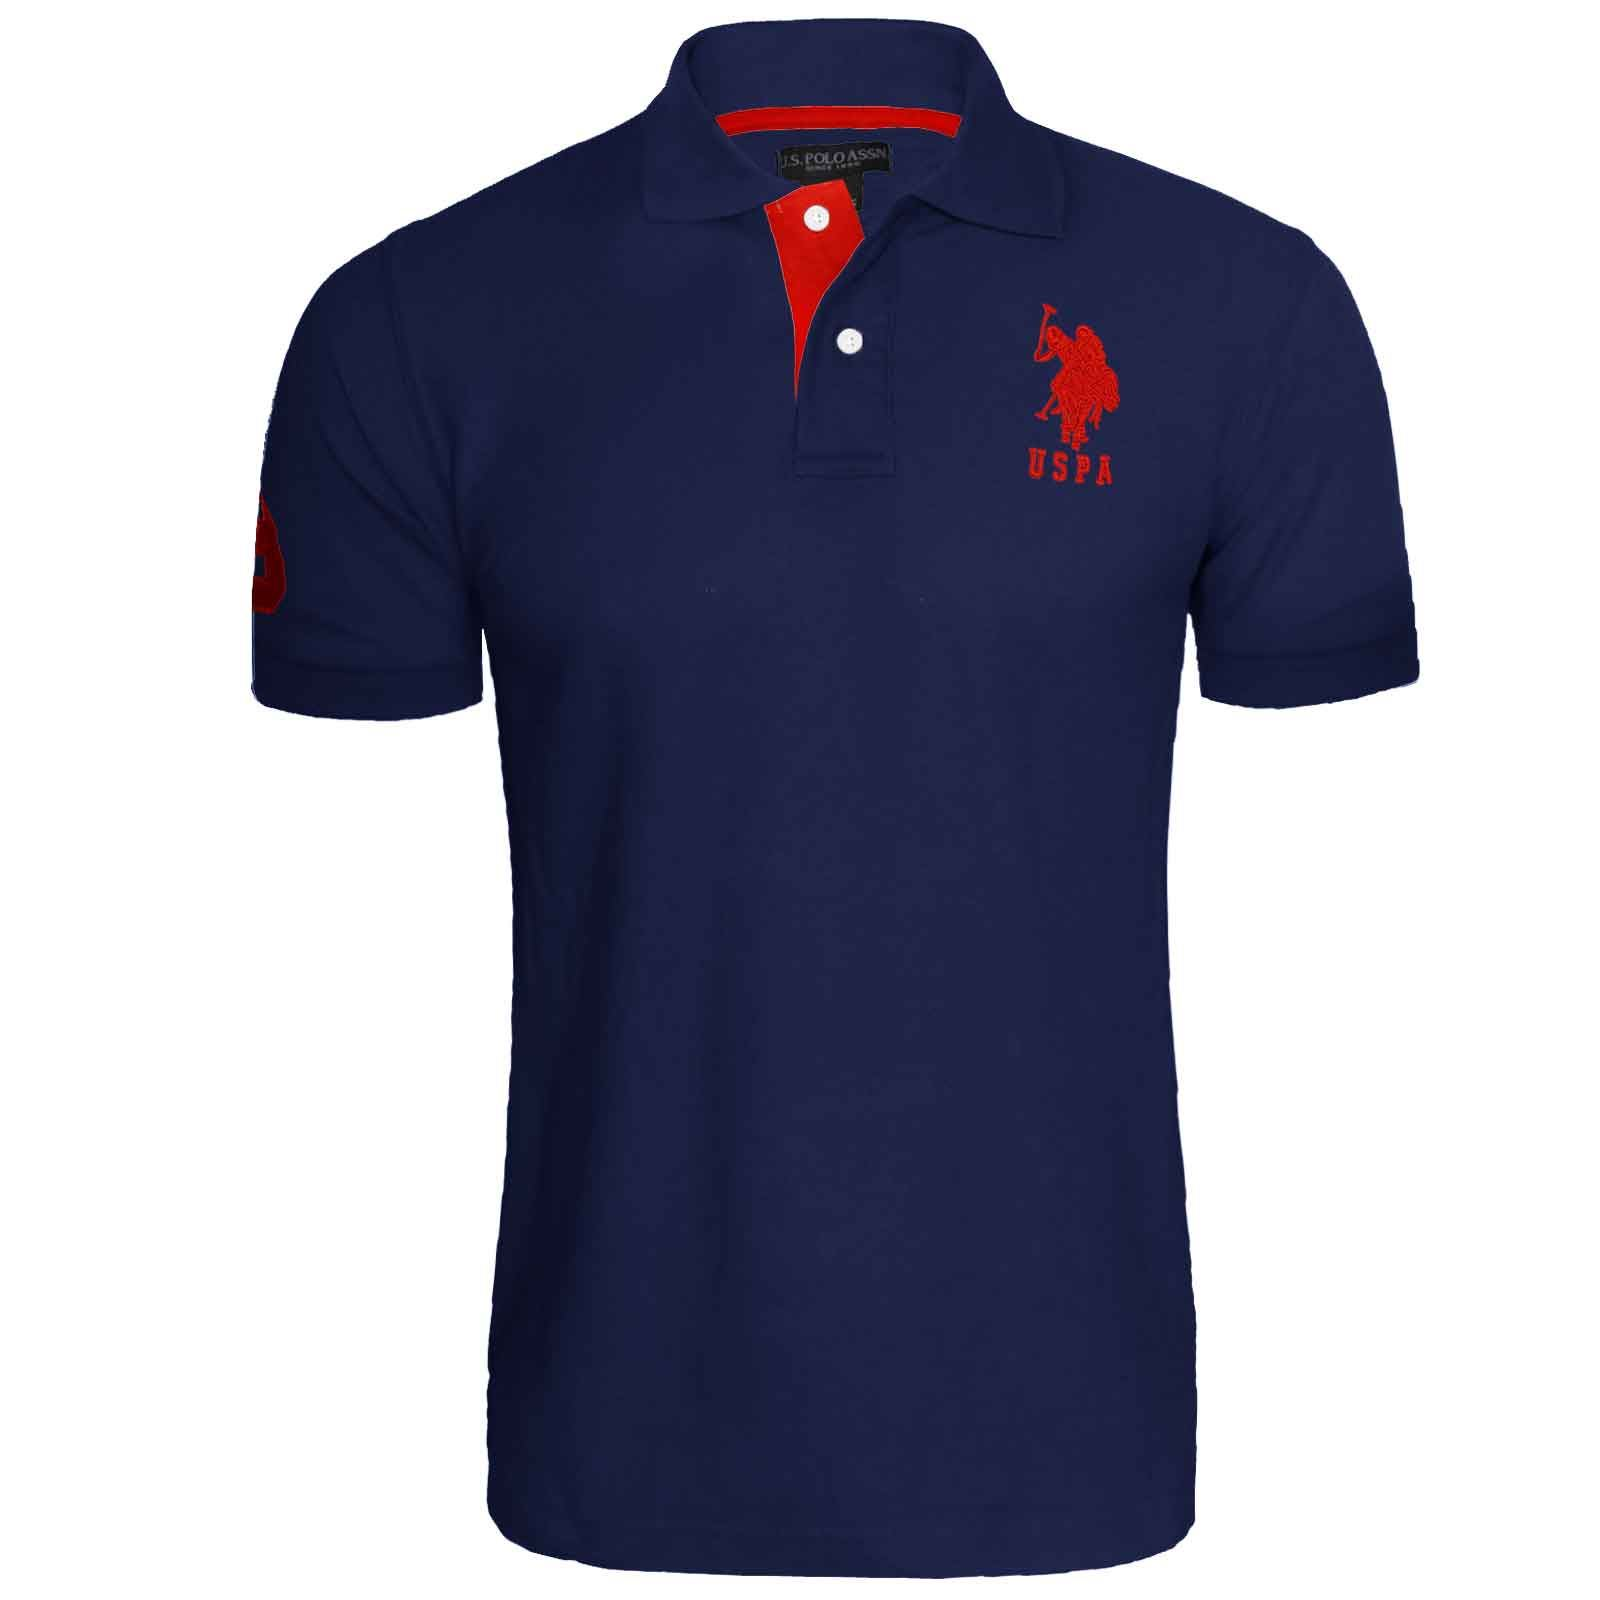 mens us polo assn pique short sleeve cotton t shirt. Black Bedroom Furniture Sets. Home Design Ideas